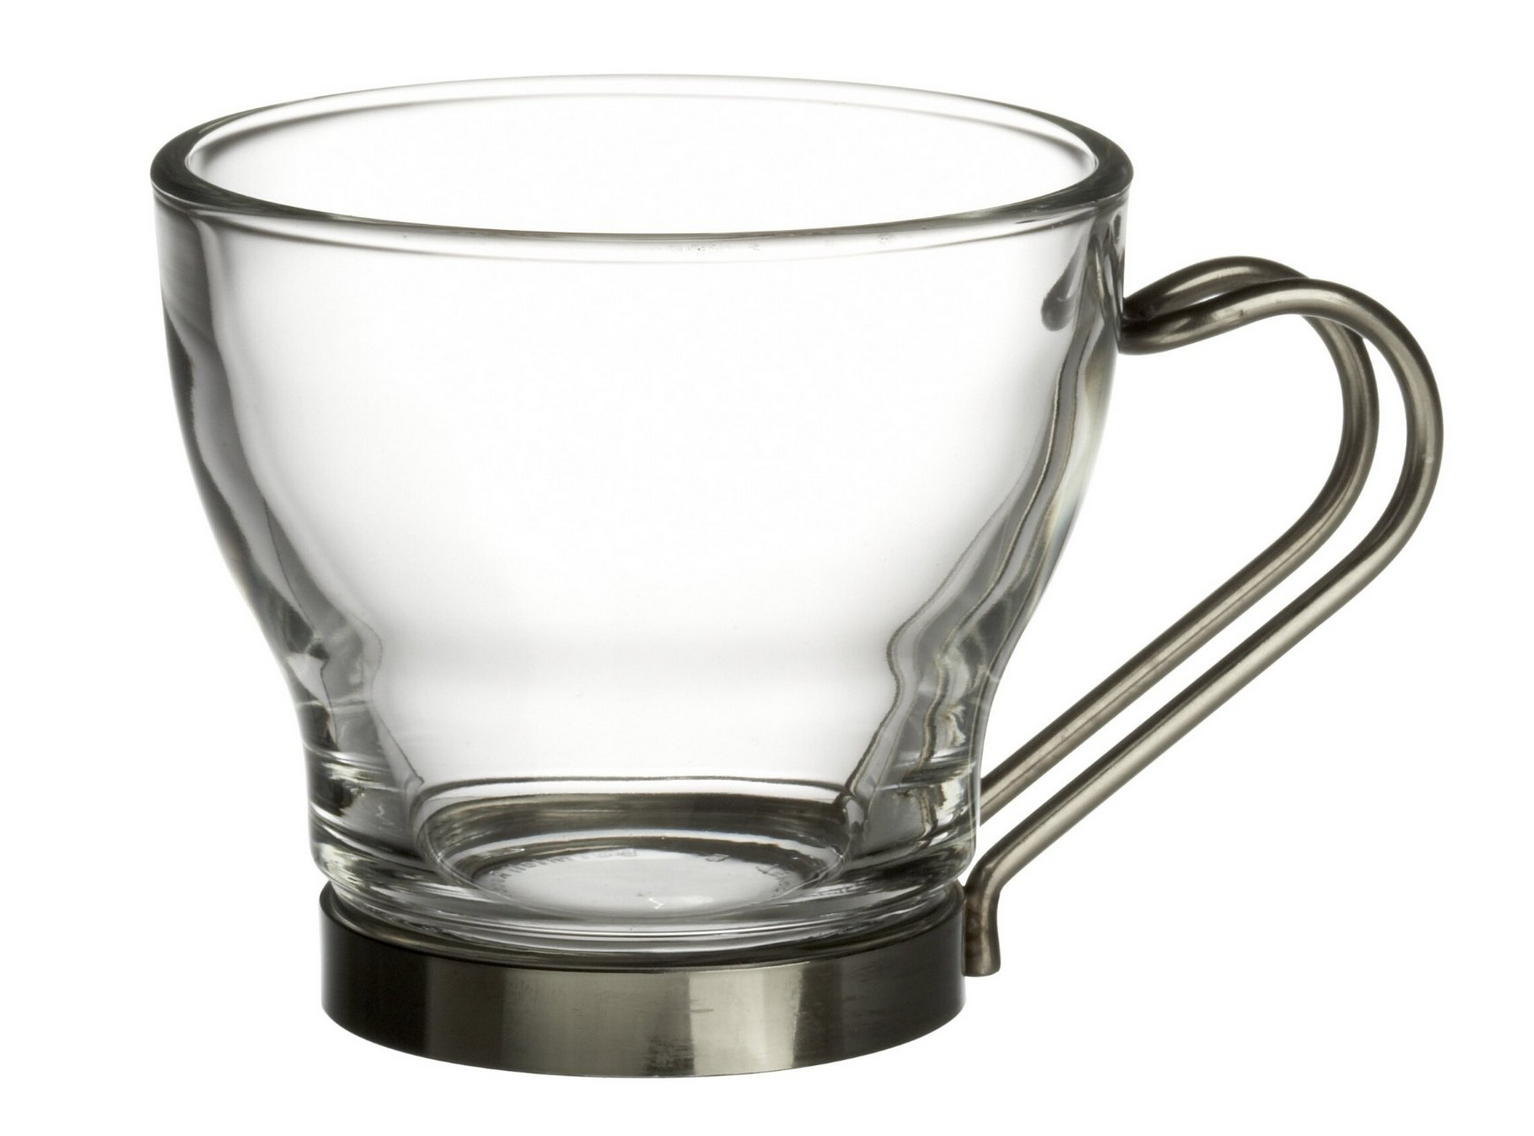 Set of 4 Bormioli Rocco Verdi Espresso Cup With Stainless Steel Handle Only $9.99 (Reg. $44.25!)